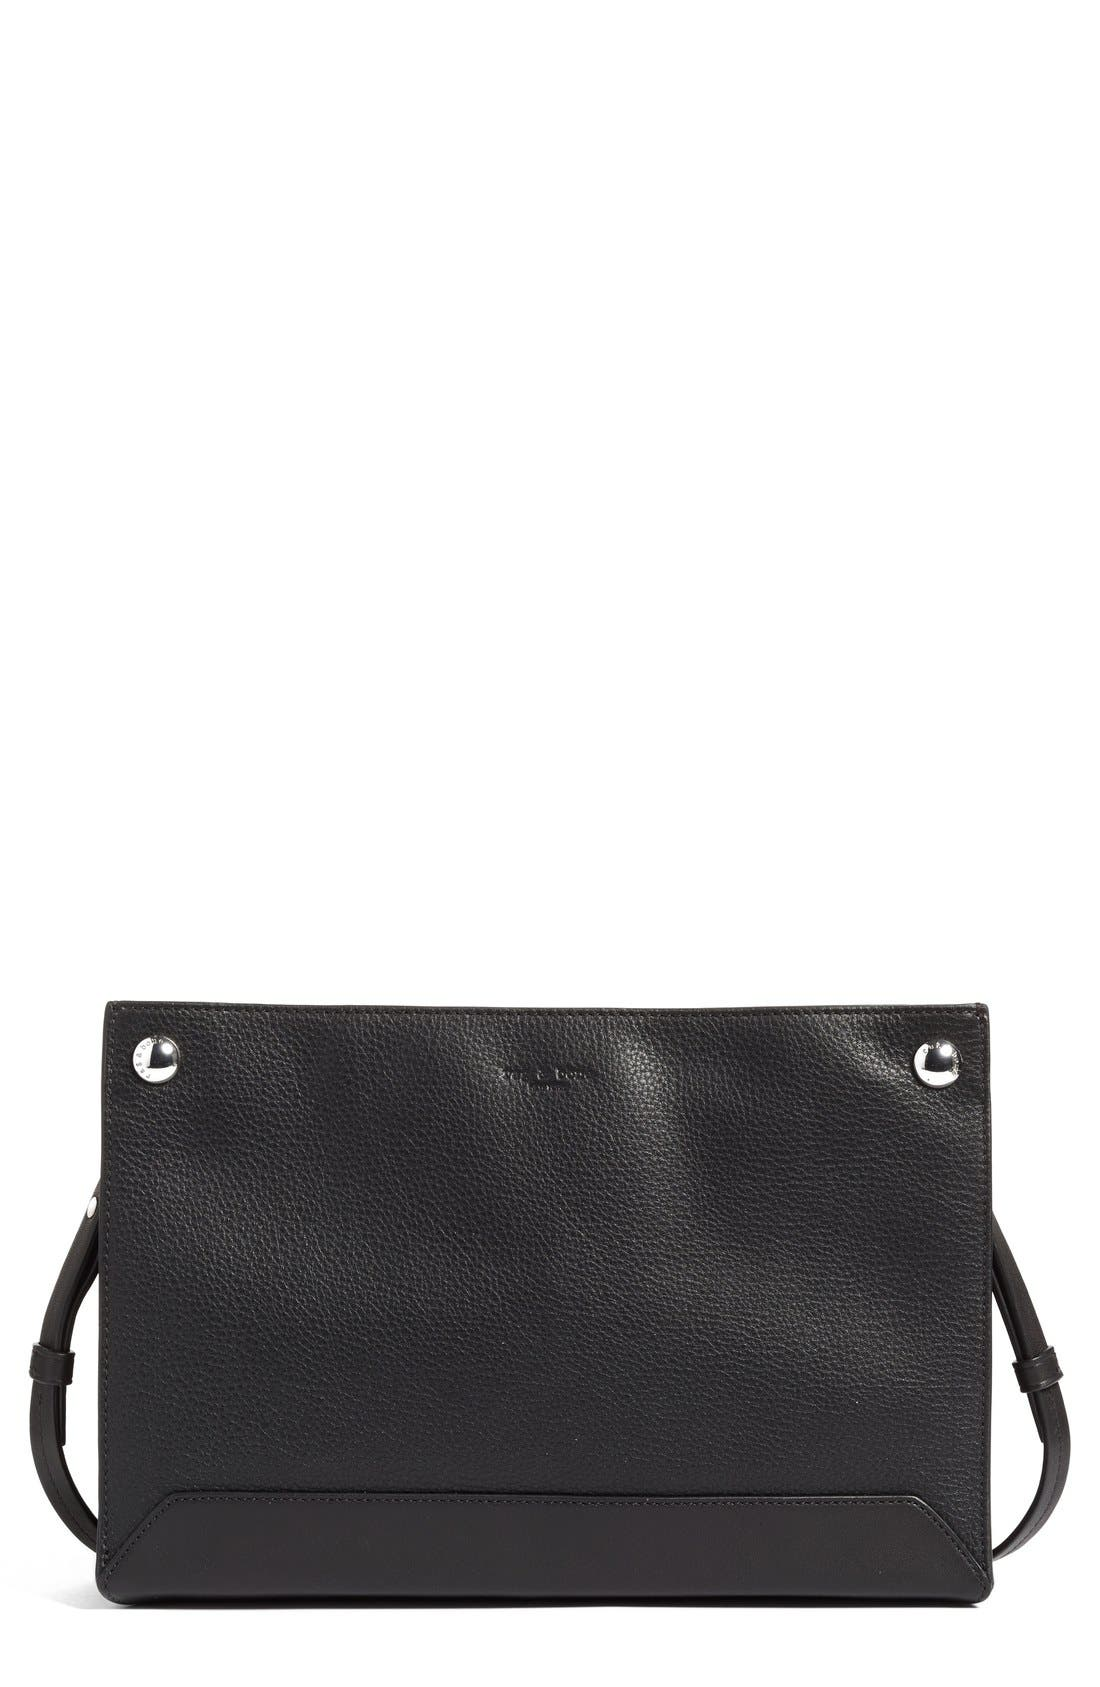 Compass Leather Crossbody Bag,                             Main thumbnail 1, color,                             Black